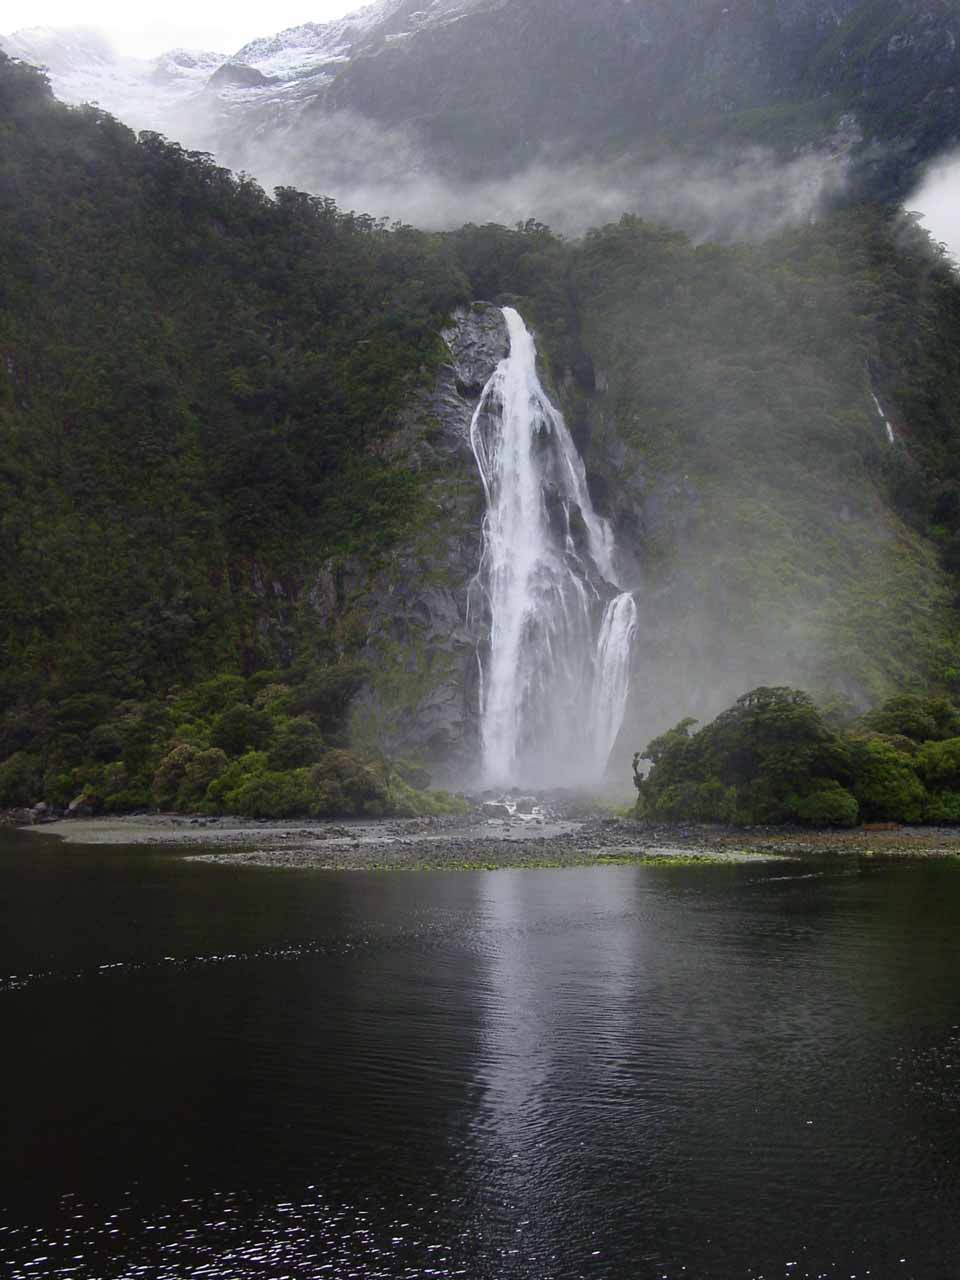 Another look at Bowen Falls from the Milford Sound Cruise